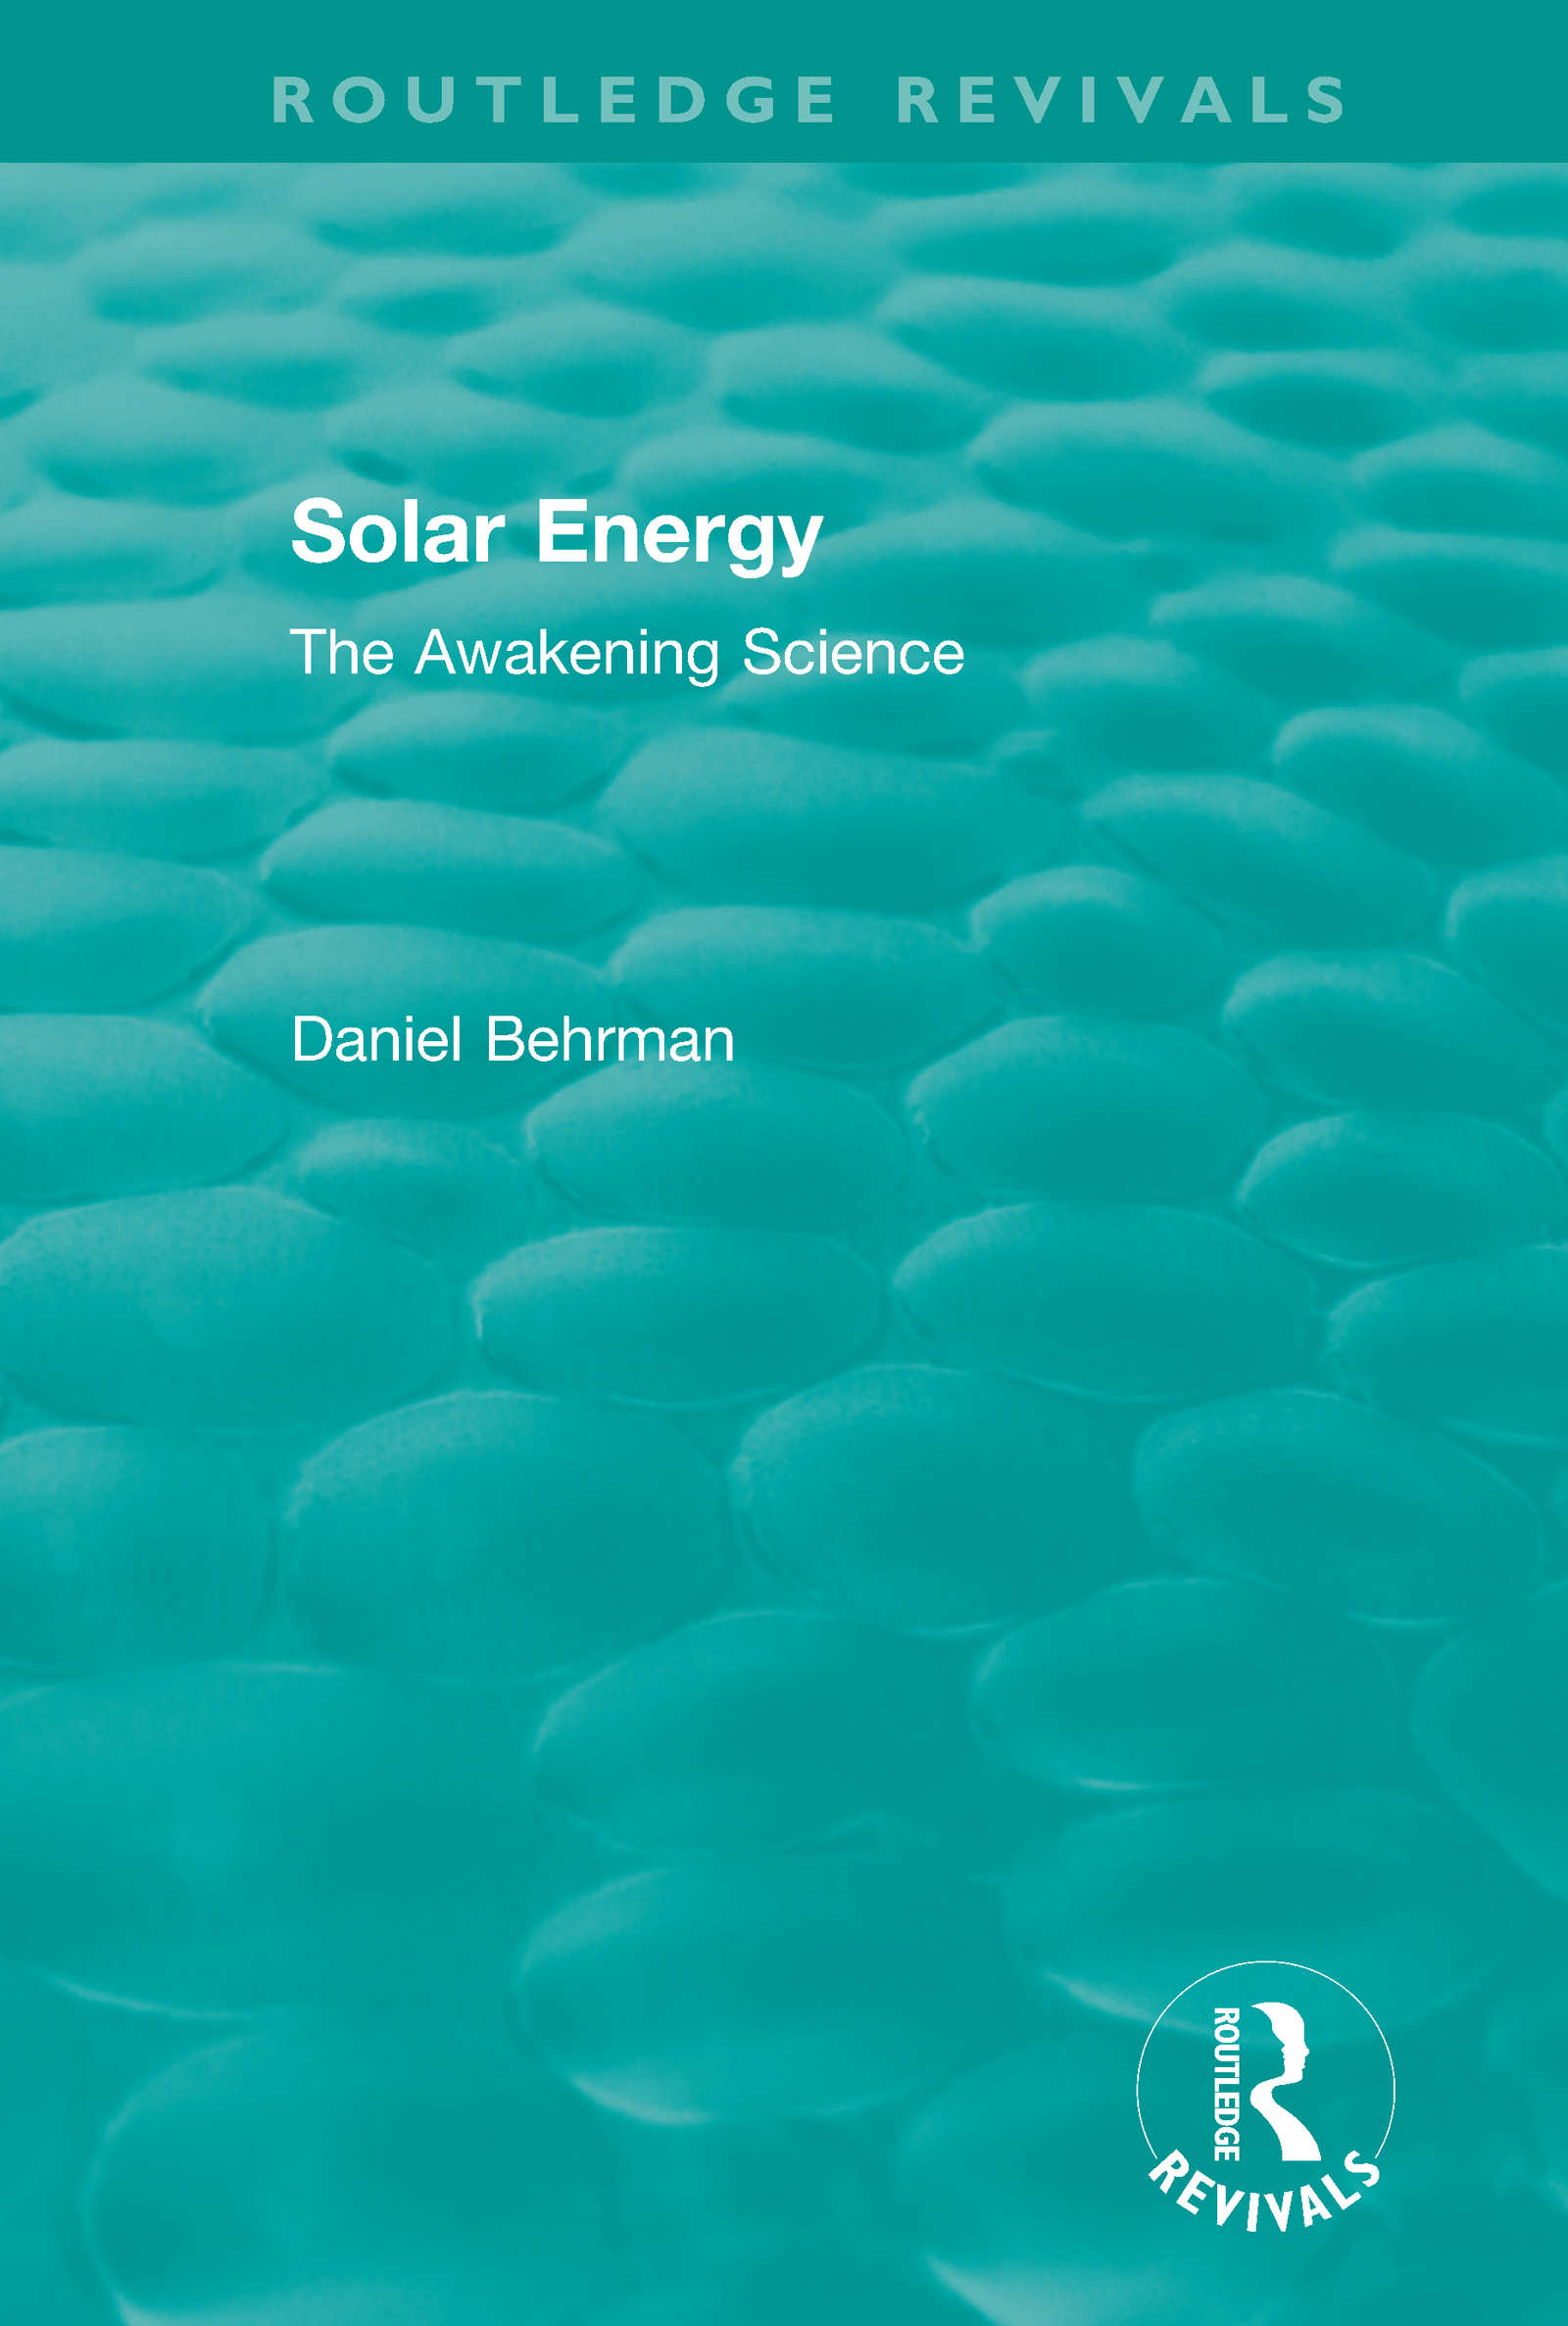 Routledge Revivals: Solar Energy (1979) book cover